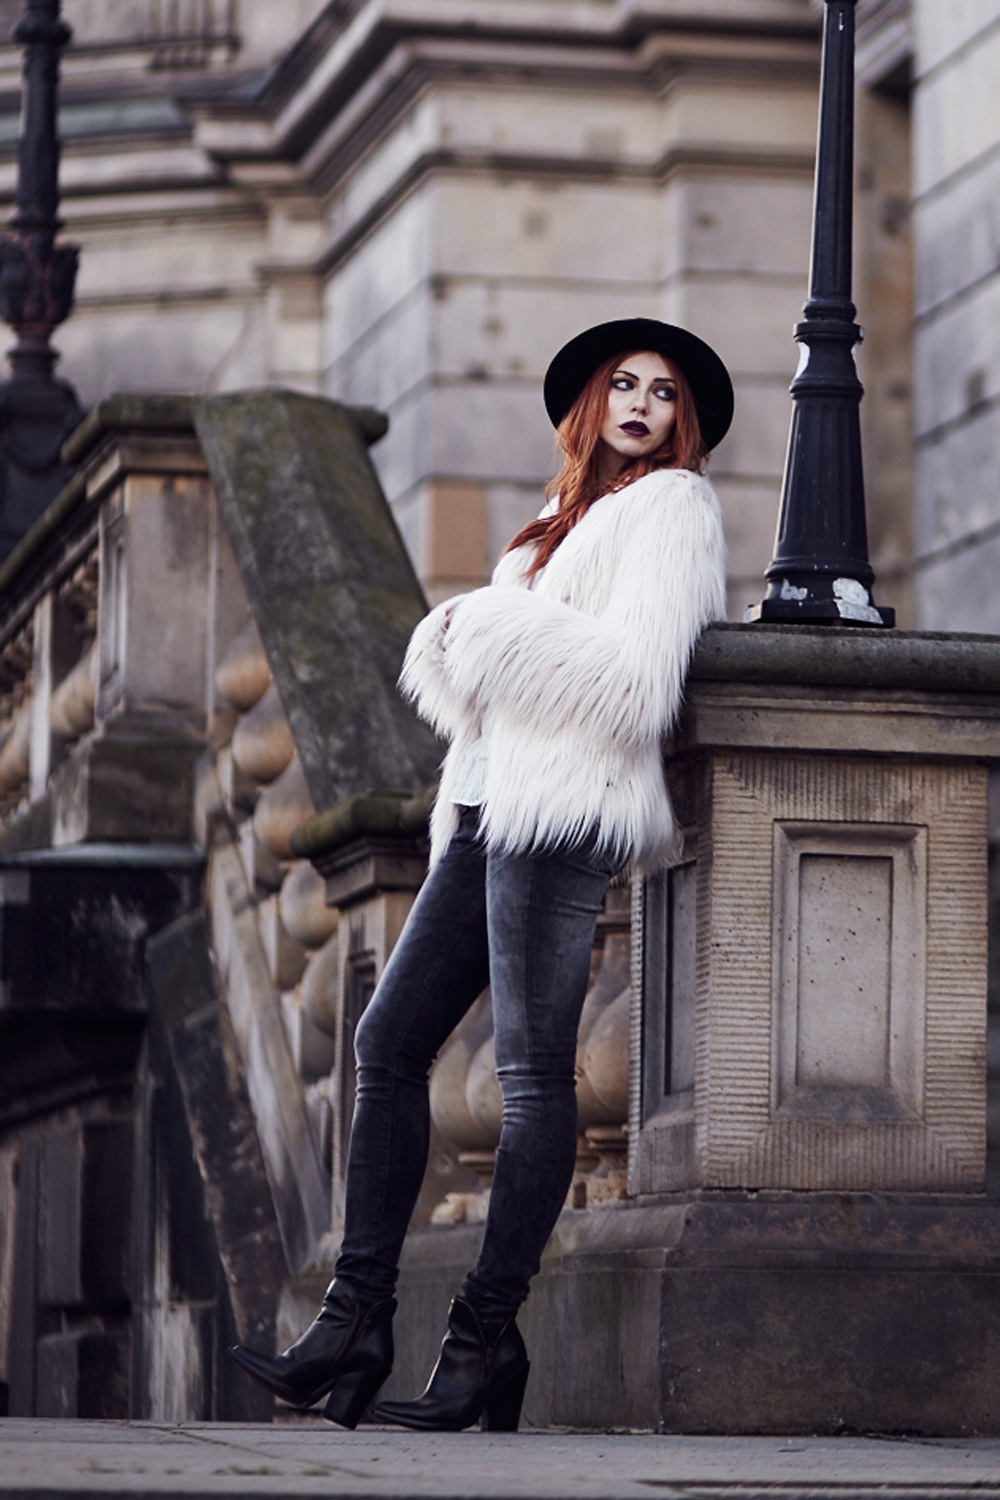 fake-fur-pepe-jeans-coat-white-masha-sedgwick-berlin-10